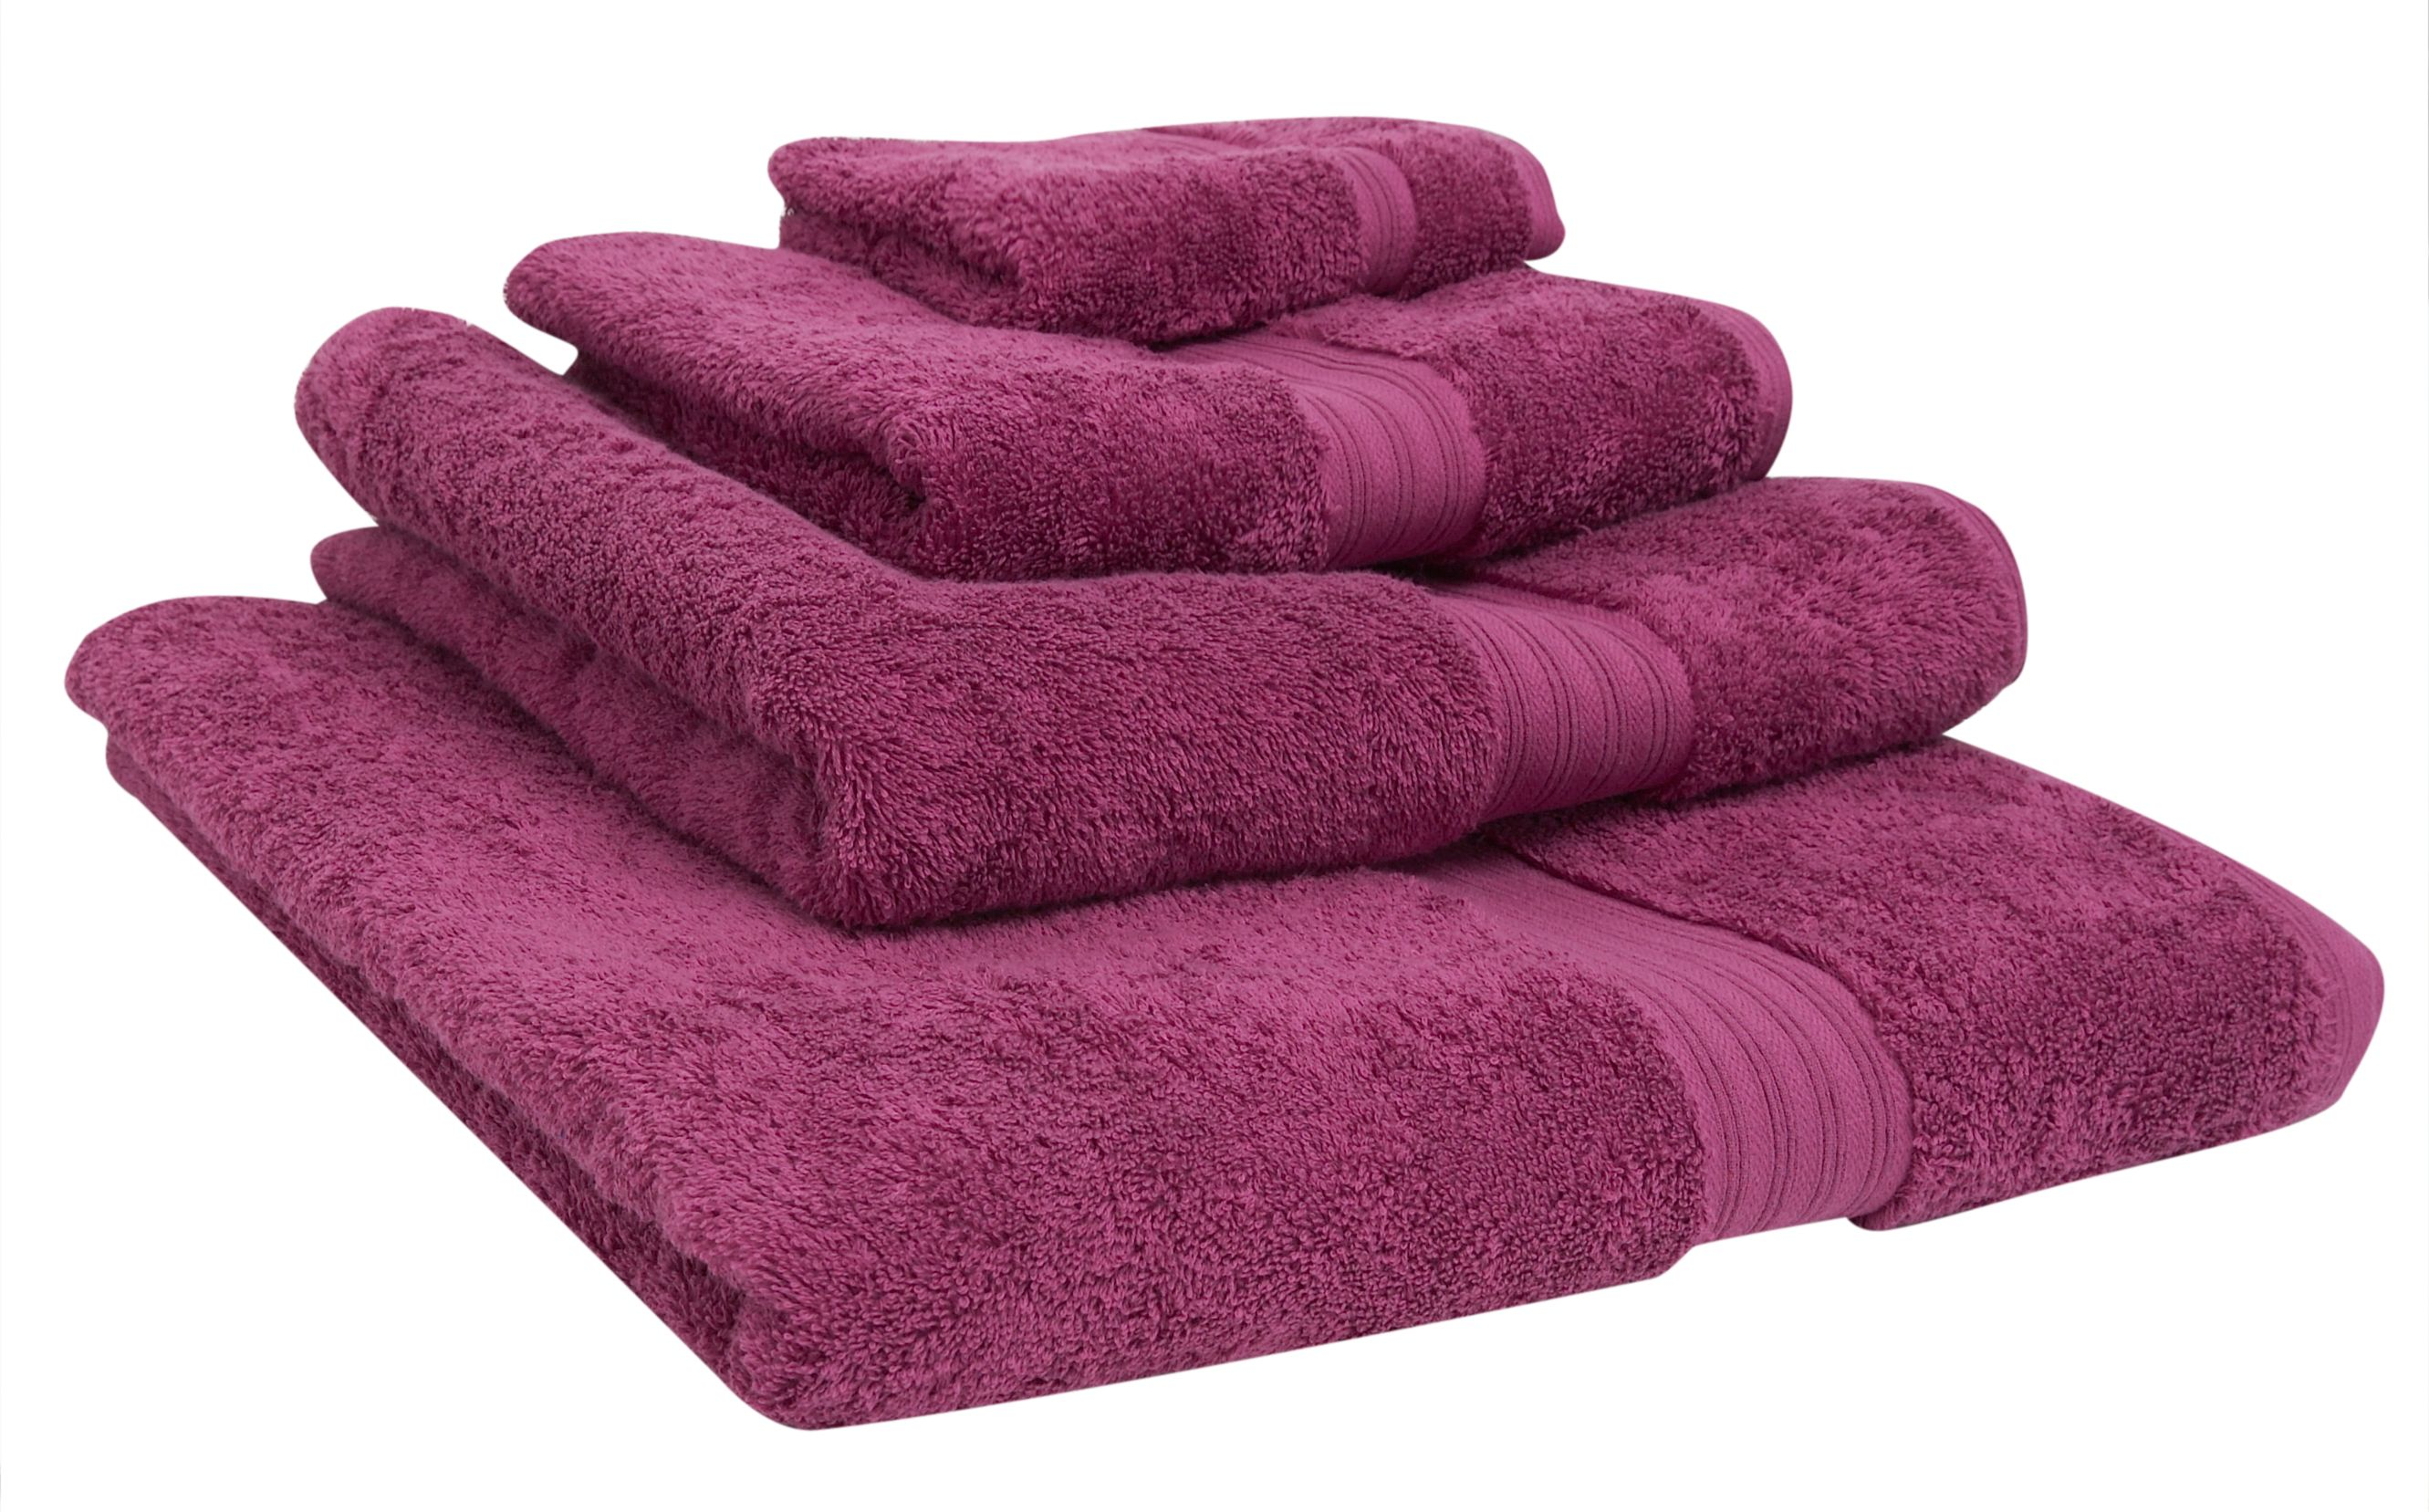 Luxe Egyptain cotton bath towel in ruby